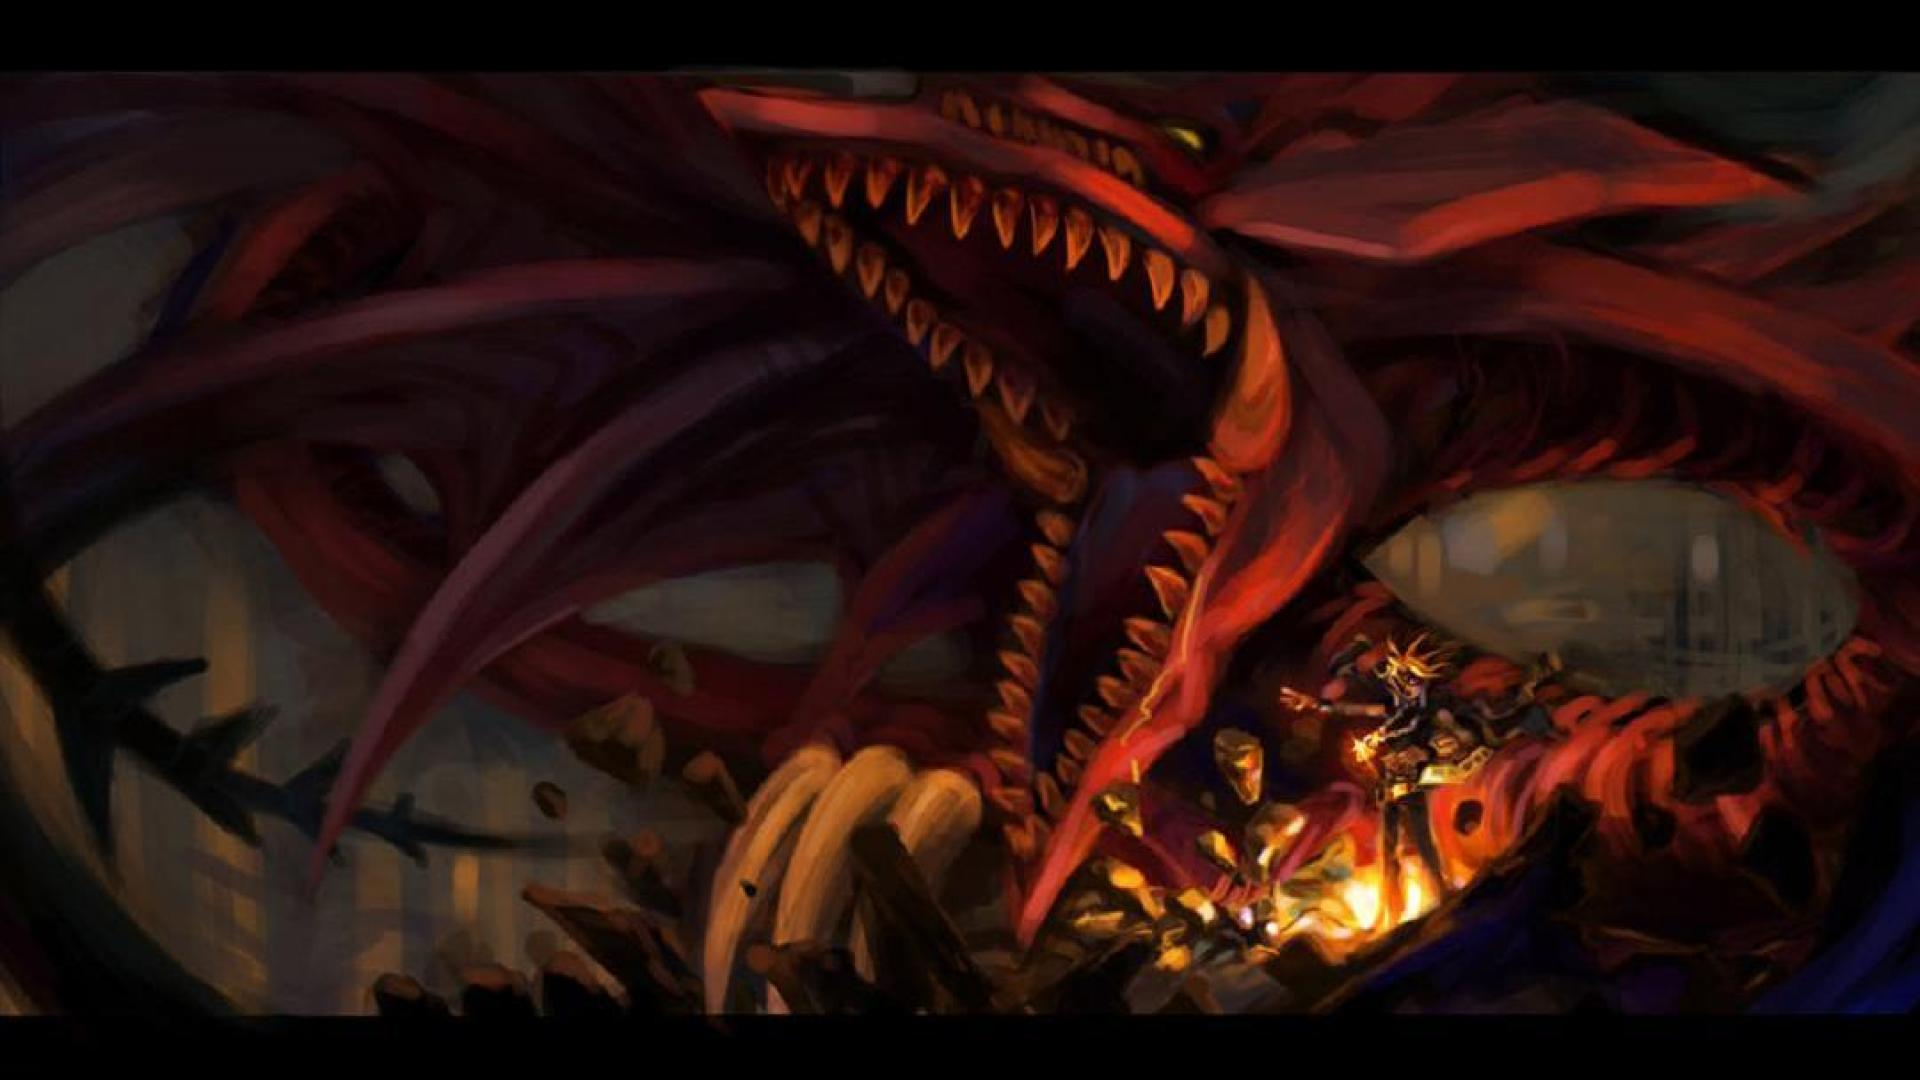 Cyber Dragon Wallpapers Top Free Cyber Dragon Backgrounds